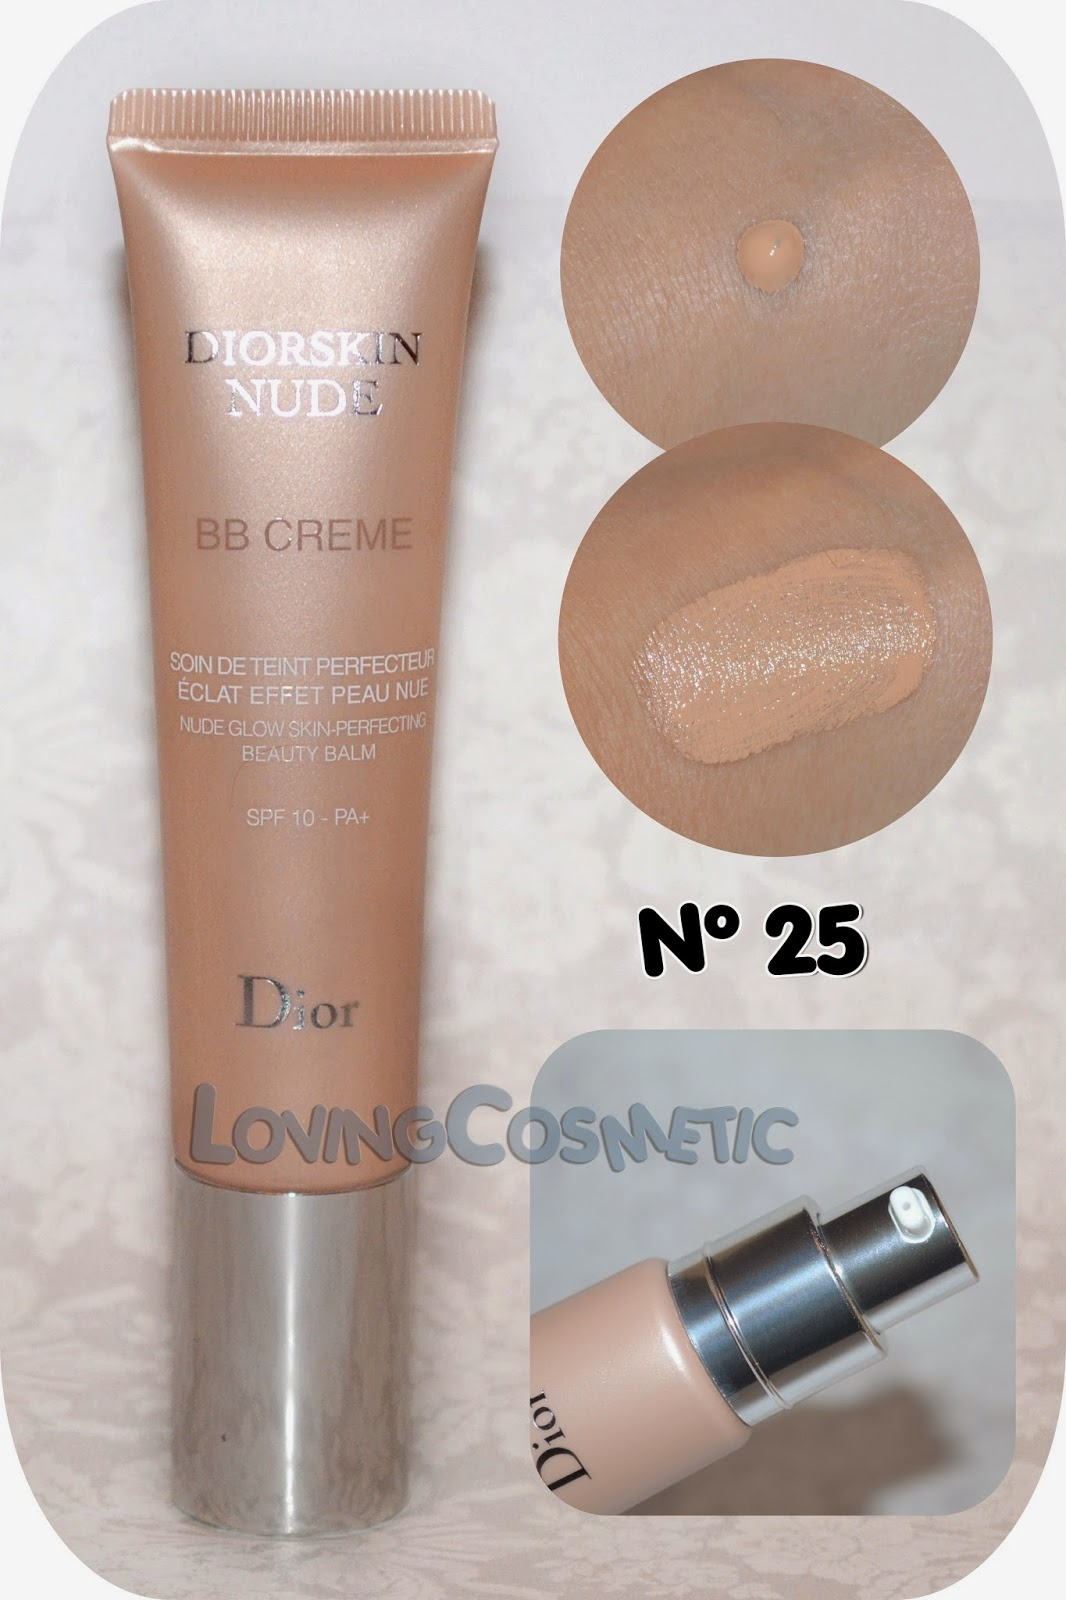 Dior Tie & Dye coleccion collection 2015 summer verano swatch swatches diorskin bb cream nude nº 25